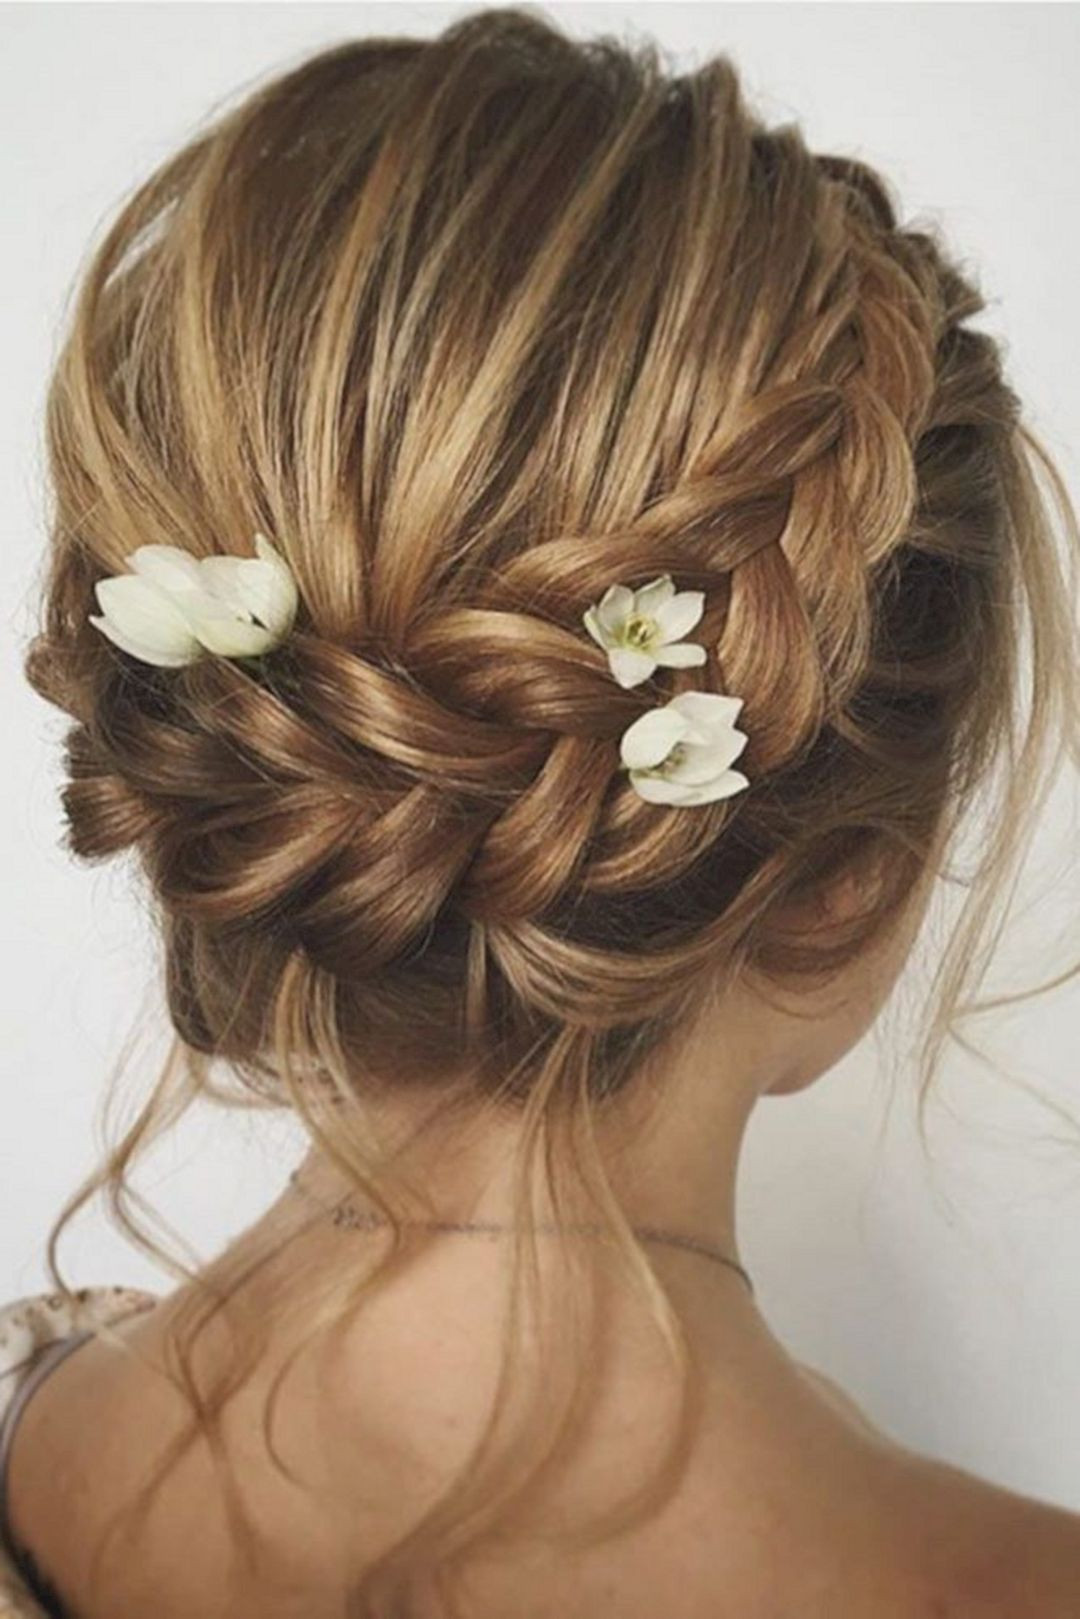 Hairstyle For Bridesmaids  Wedding Bridesmaid Hairstyles for Short Hairs – OOSILE